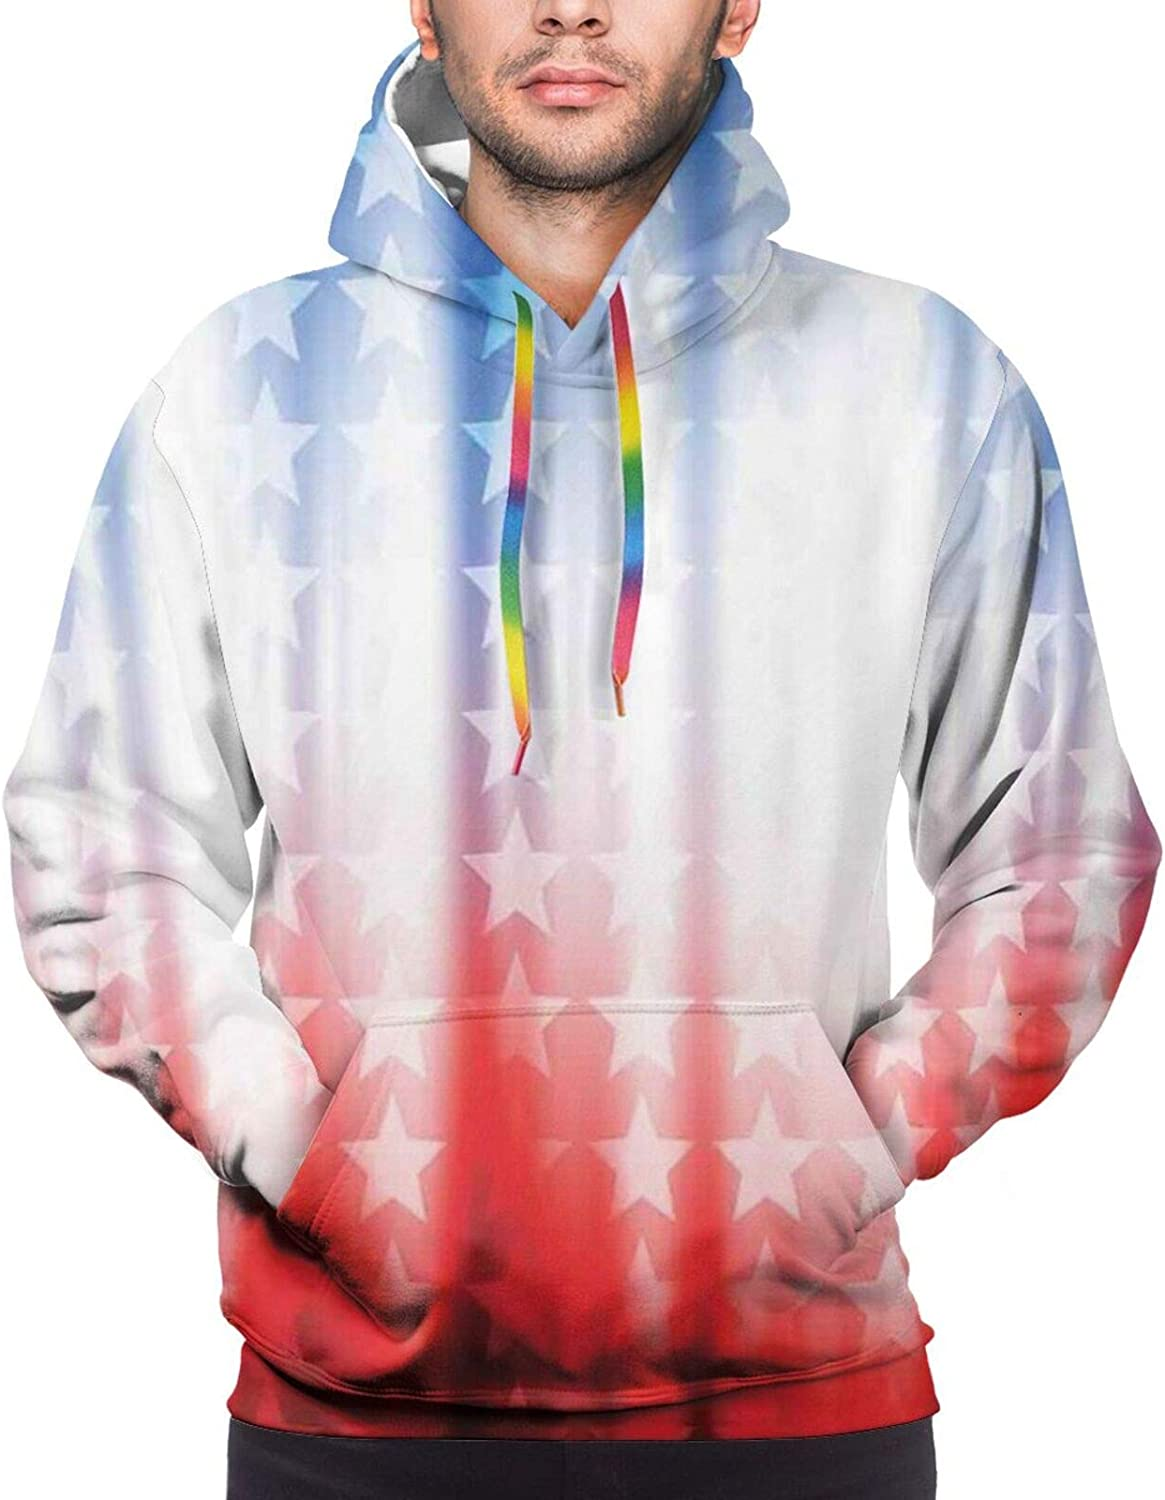 TENJONE Men's Hoodies Sweatshirts,Abstract Background with Colorful Letters Artistic Happy Ceremony